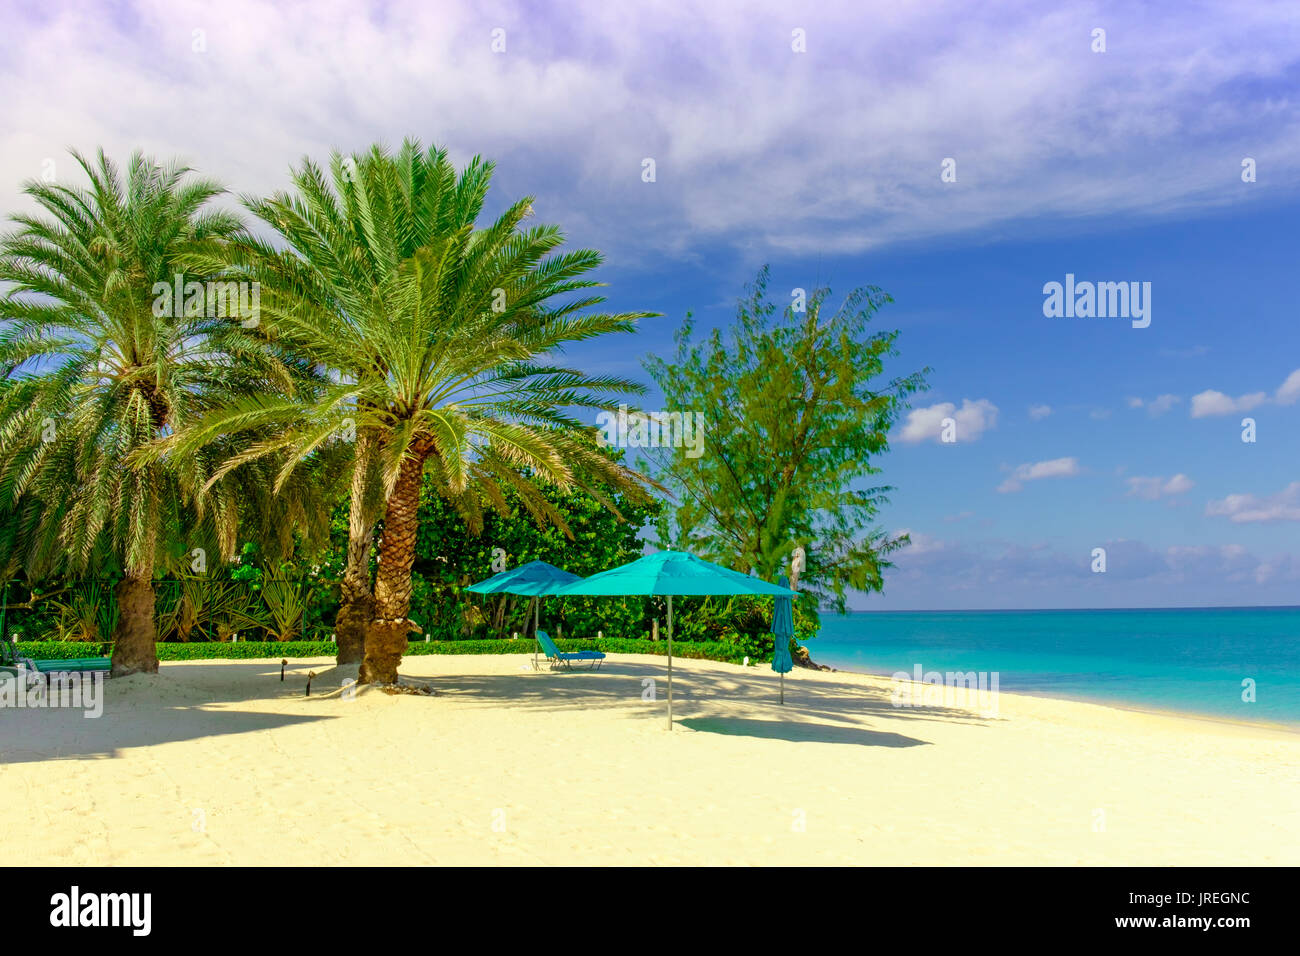 Parasols and palm trees on Seven Mile Beach in the Caribbean, Grand Cayman, Cayman Islands - Stock Image